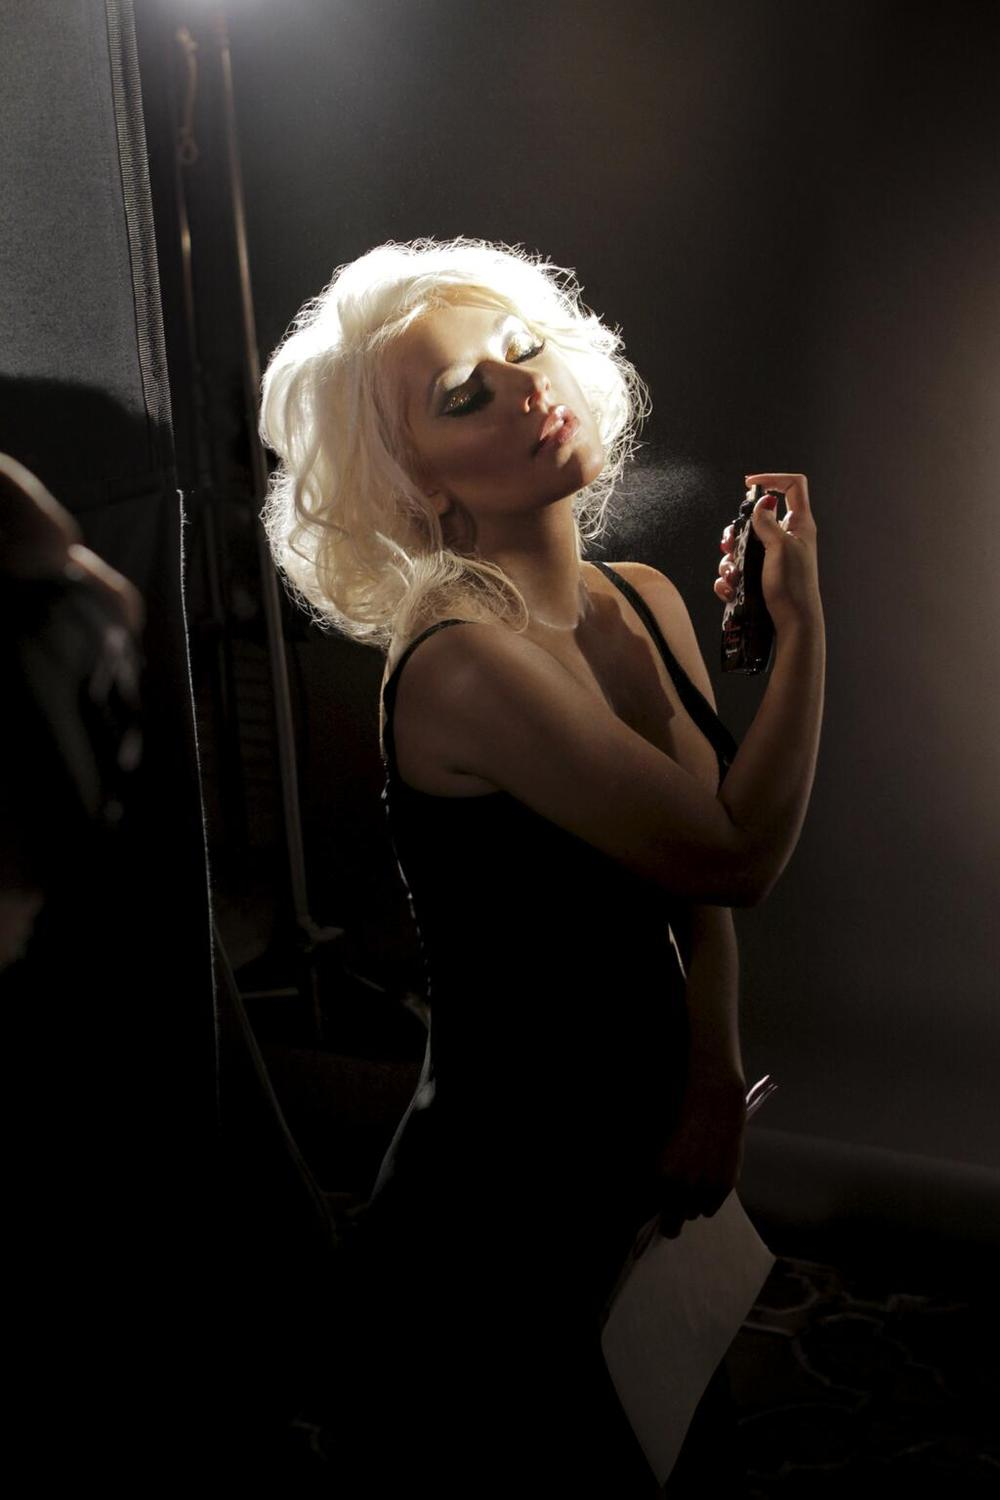 Christina Aguilera Looks Sexier Than Ever in Marilyn Monroe-Inspired Perfume Ad (PHOTO)